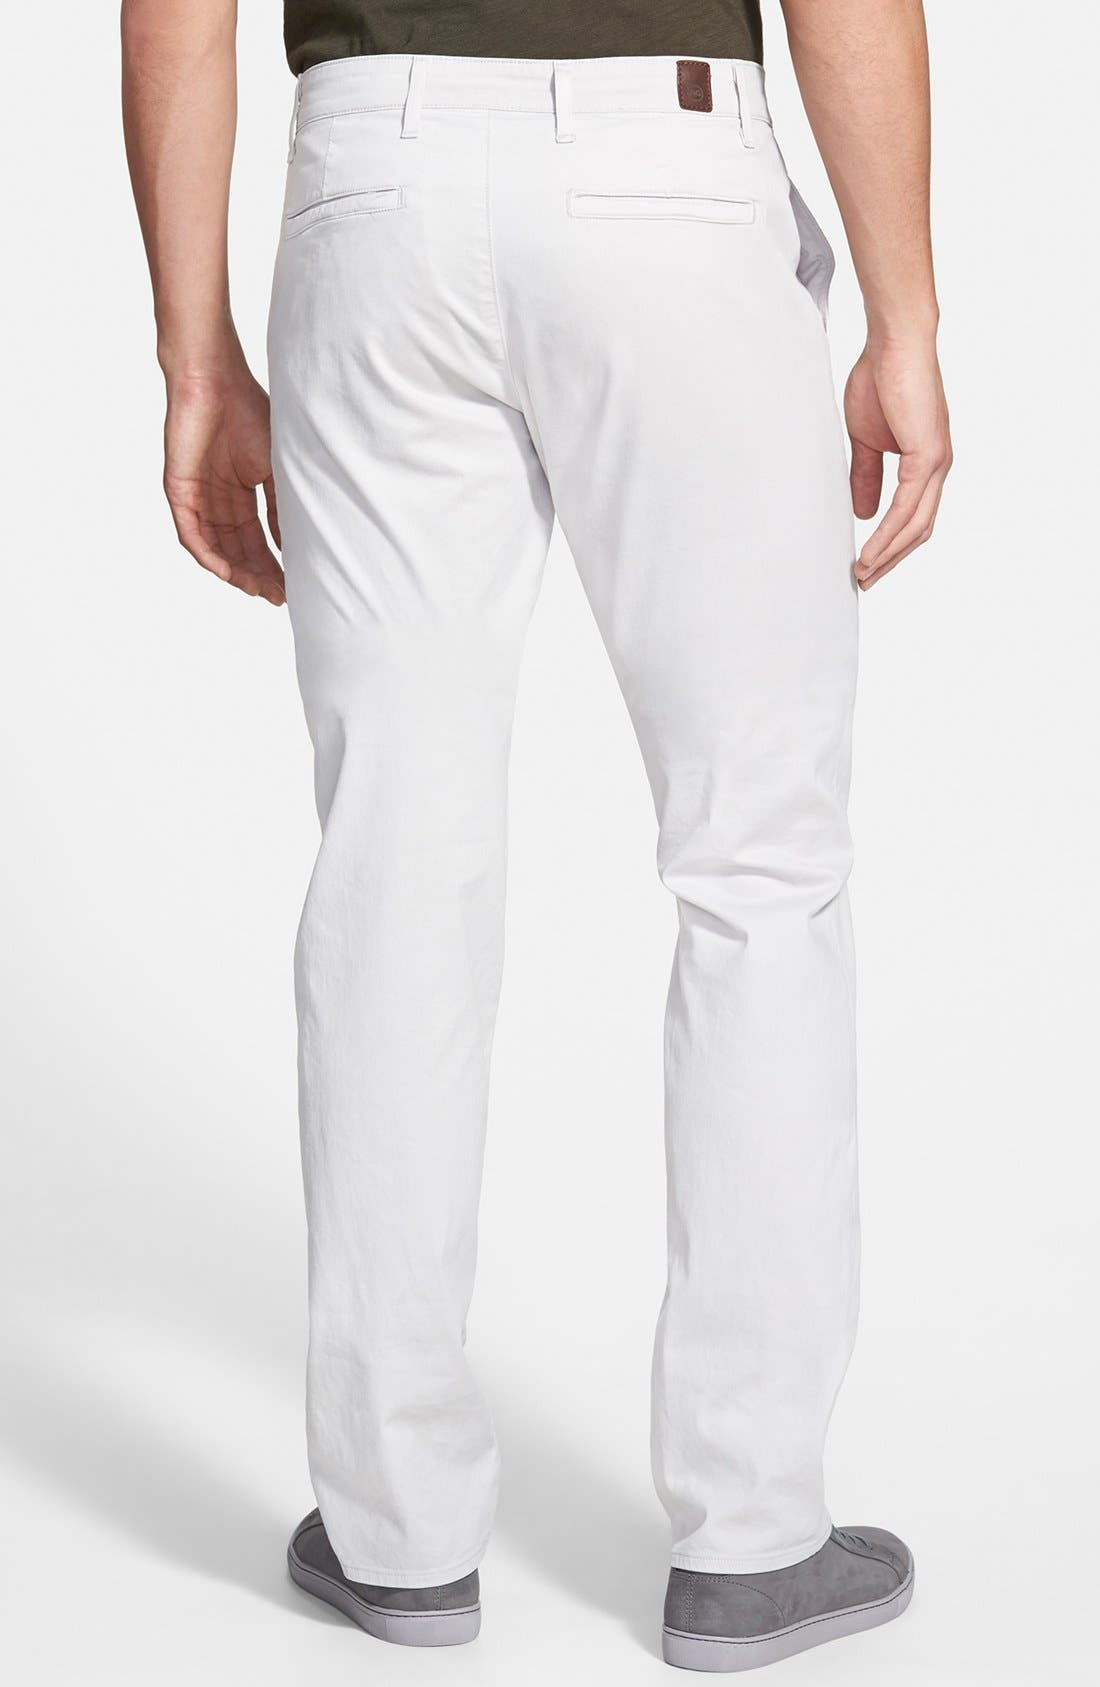 'The Lux' Tailored Straight Leg Chinos,                             Alternate thumbnail 2, color,                             060